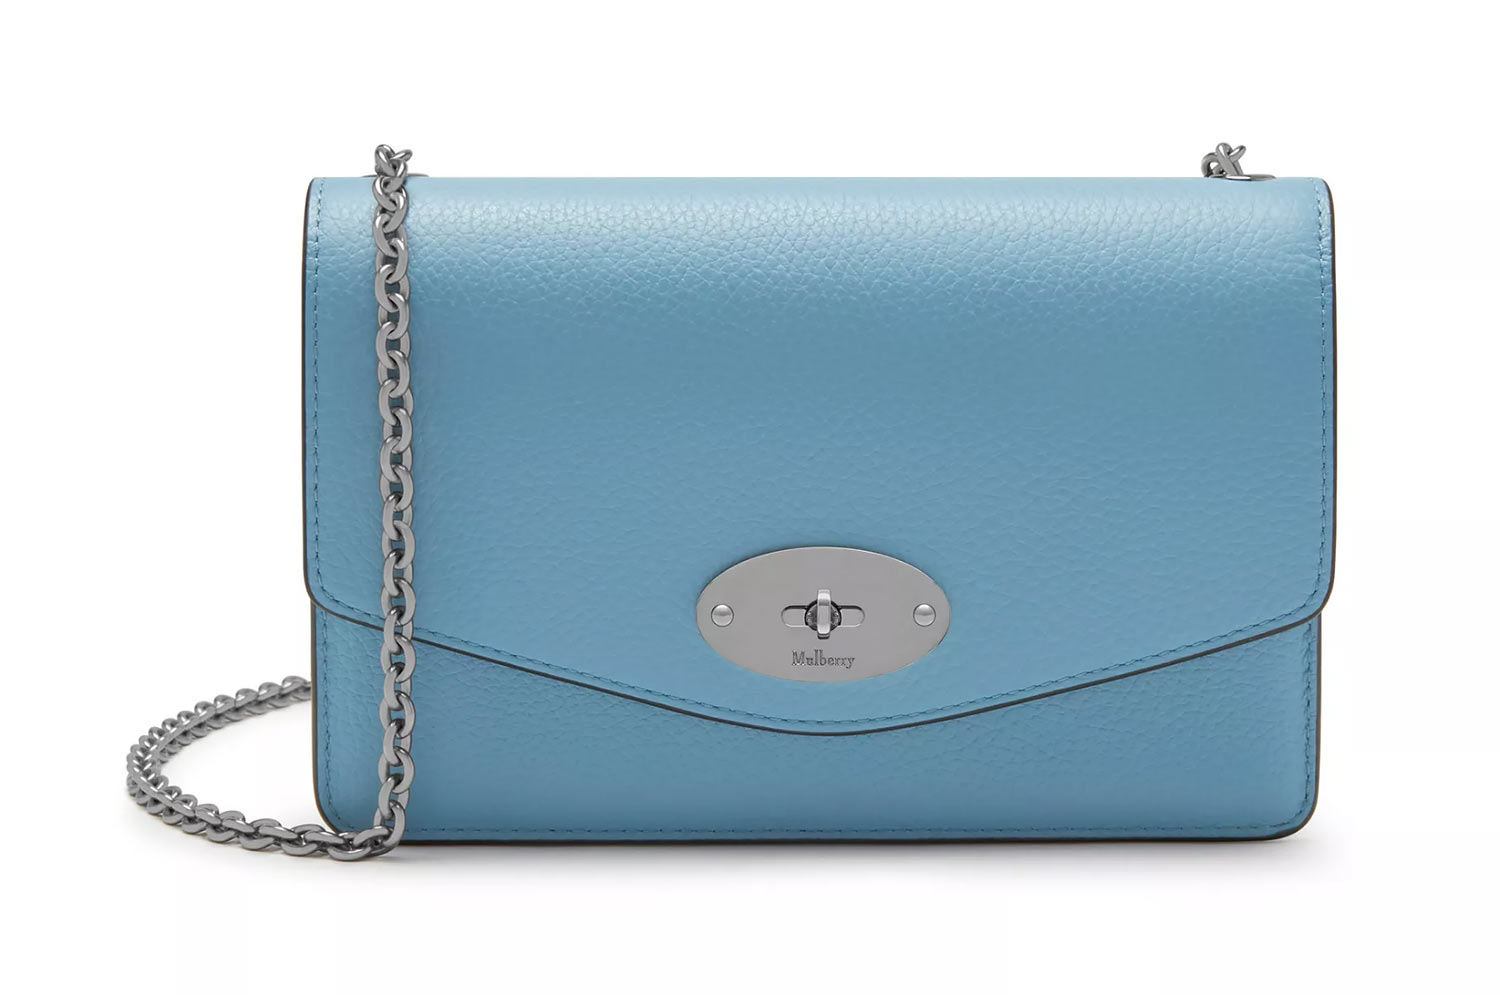 New Mulberry Pale Slate Bags For Summer